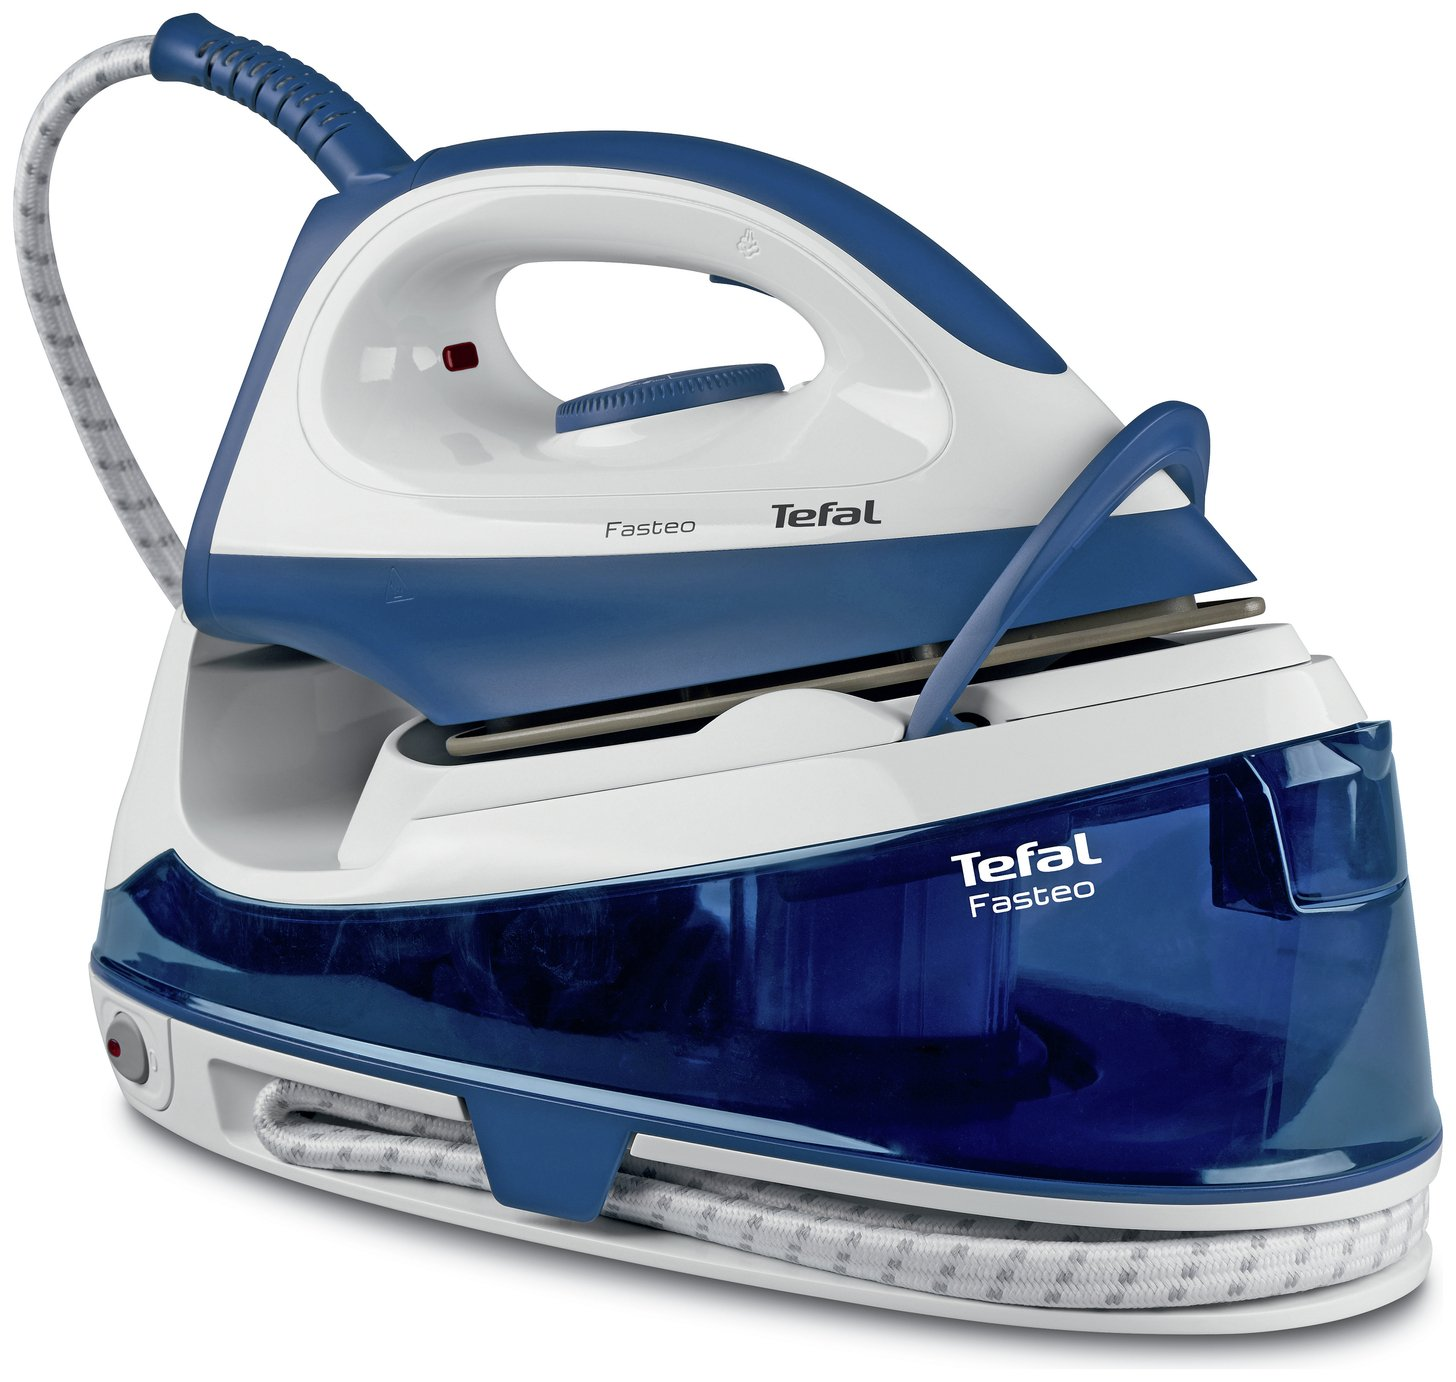 Tefal SV6040 Fasteo Steam Generator Iron